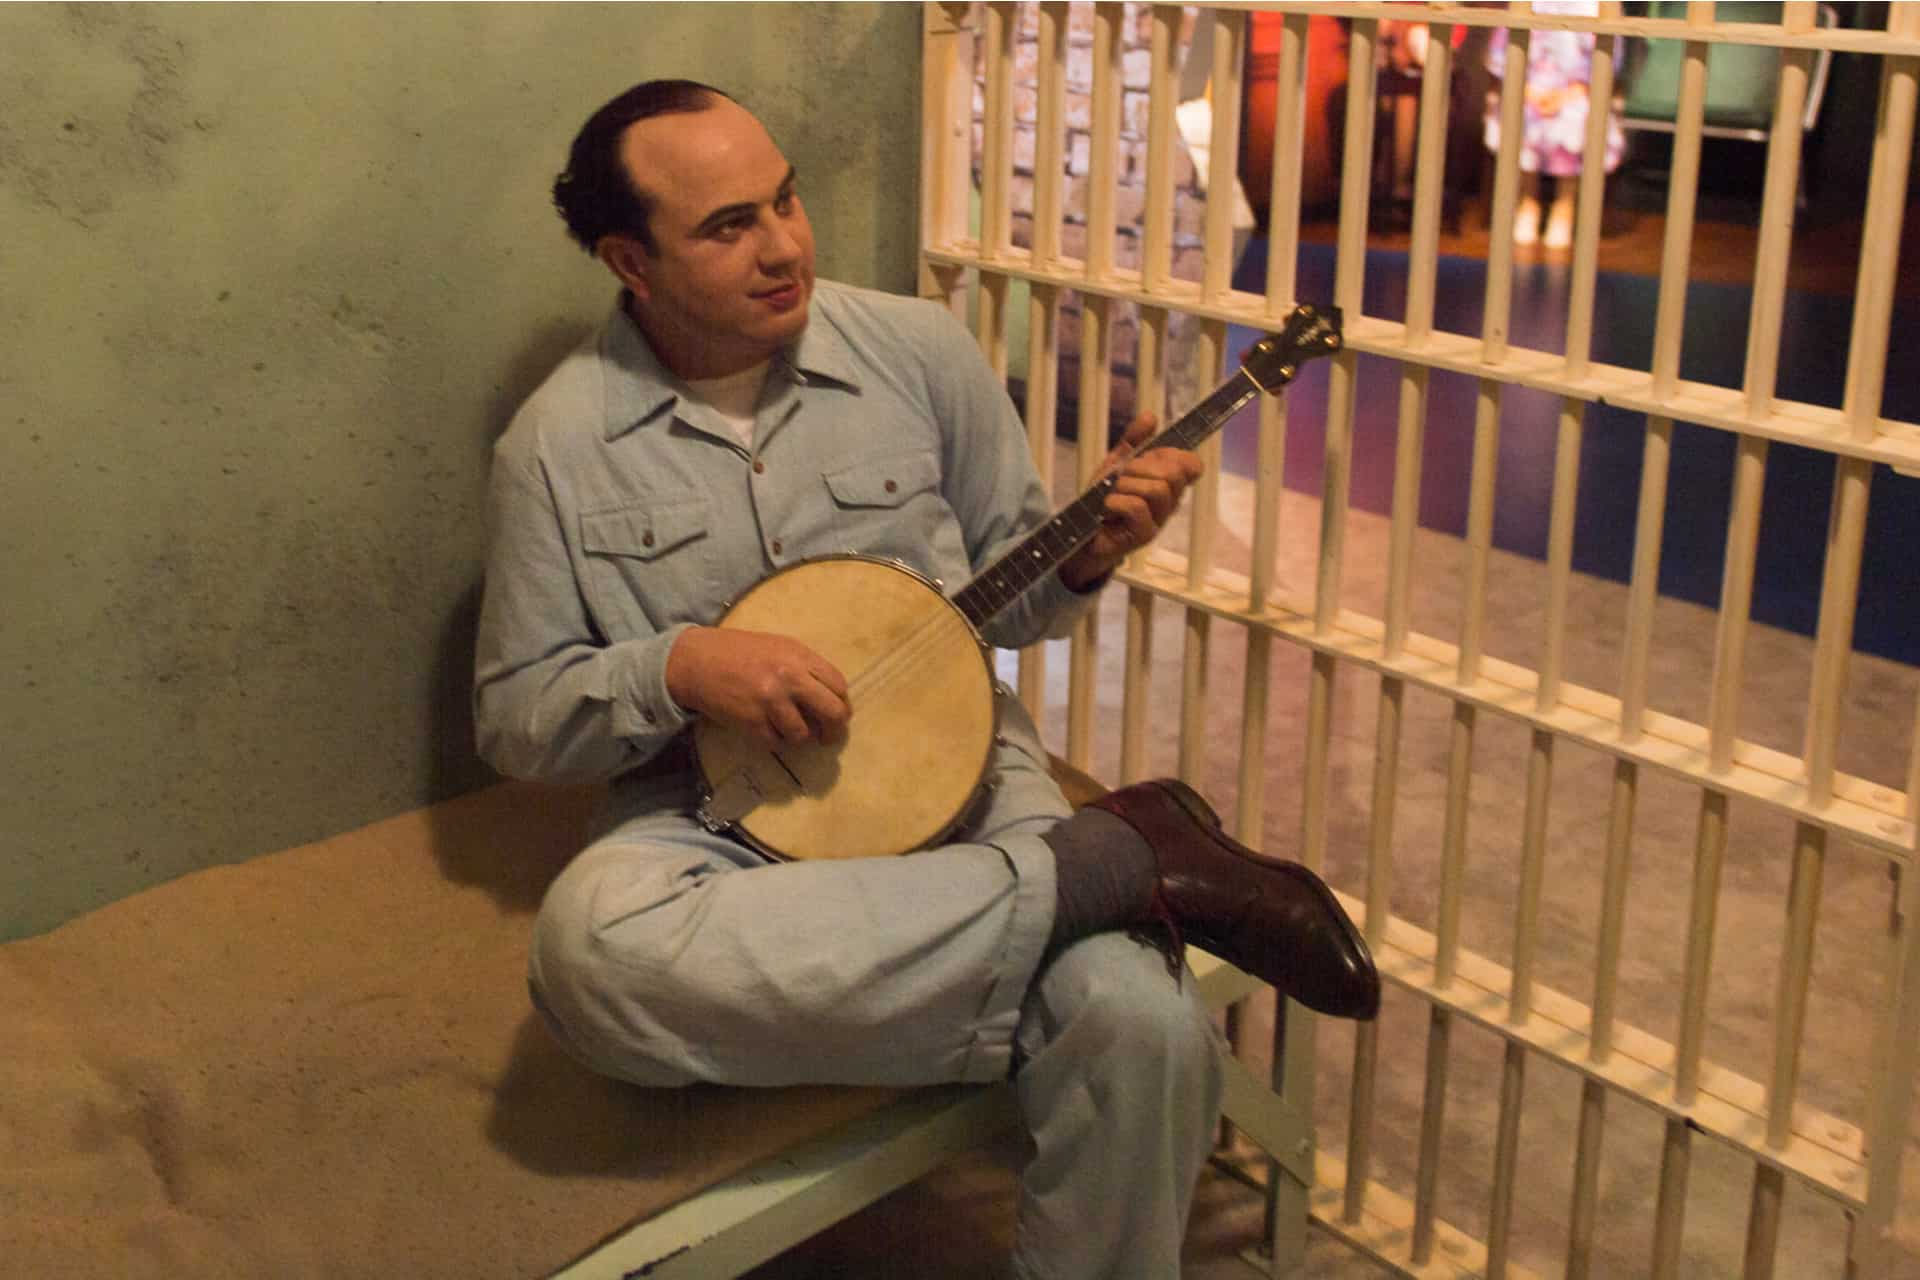 Which Prisoner Played the Banjo in the Alcatraz Inmate Band?